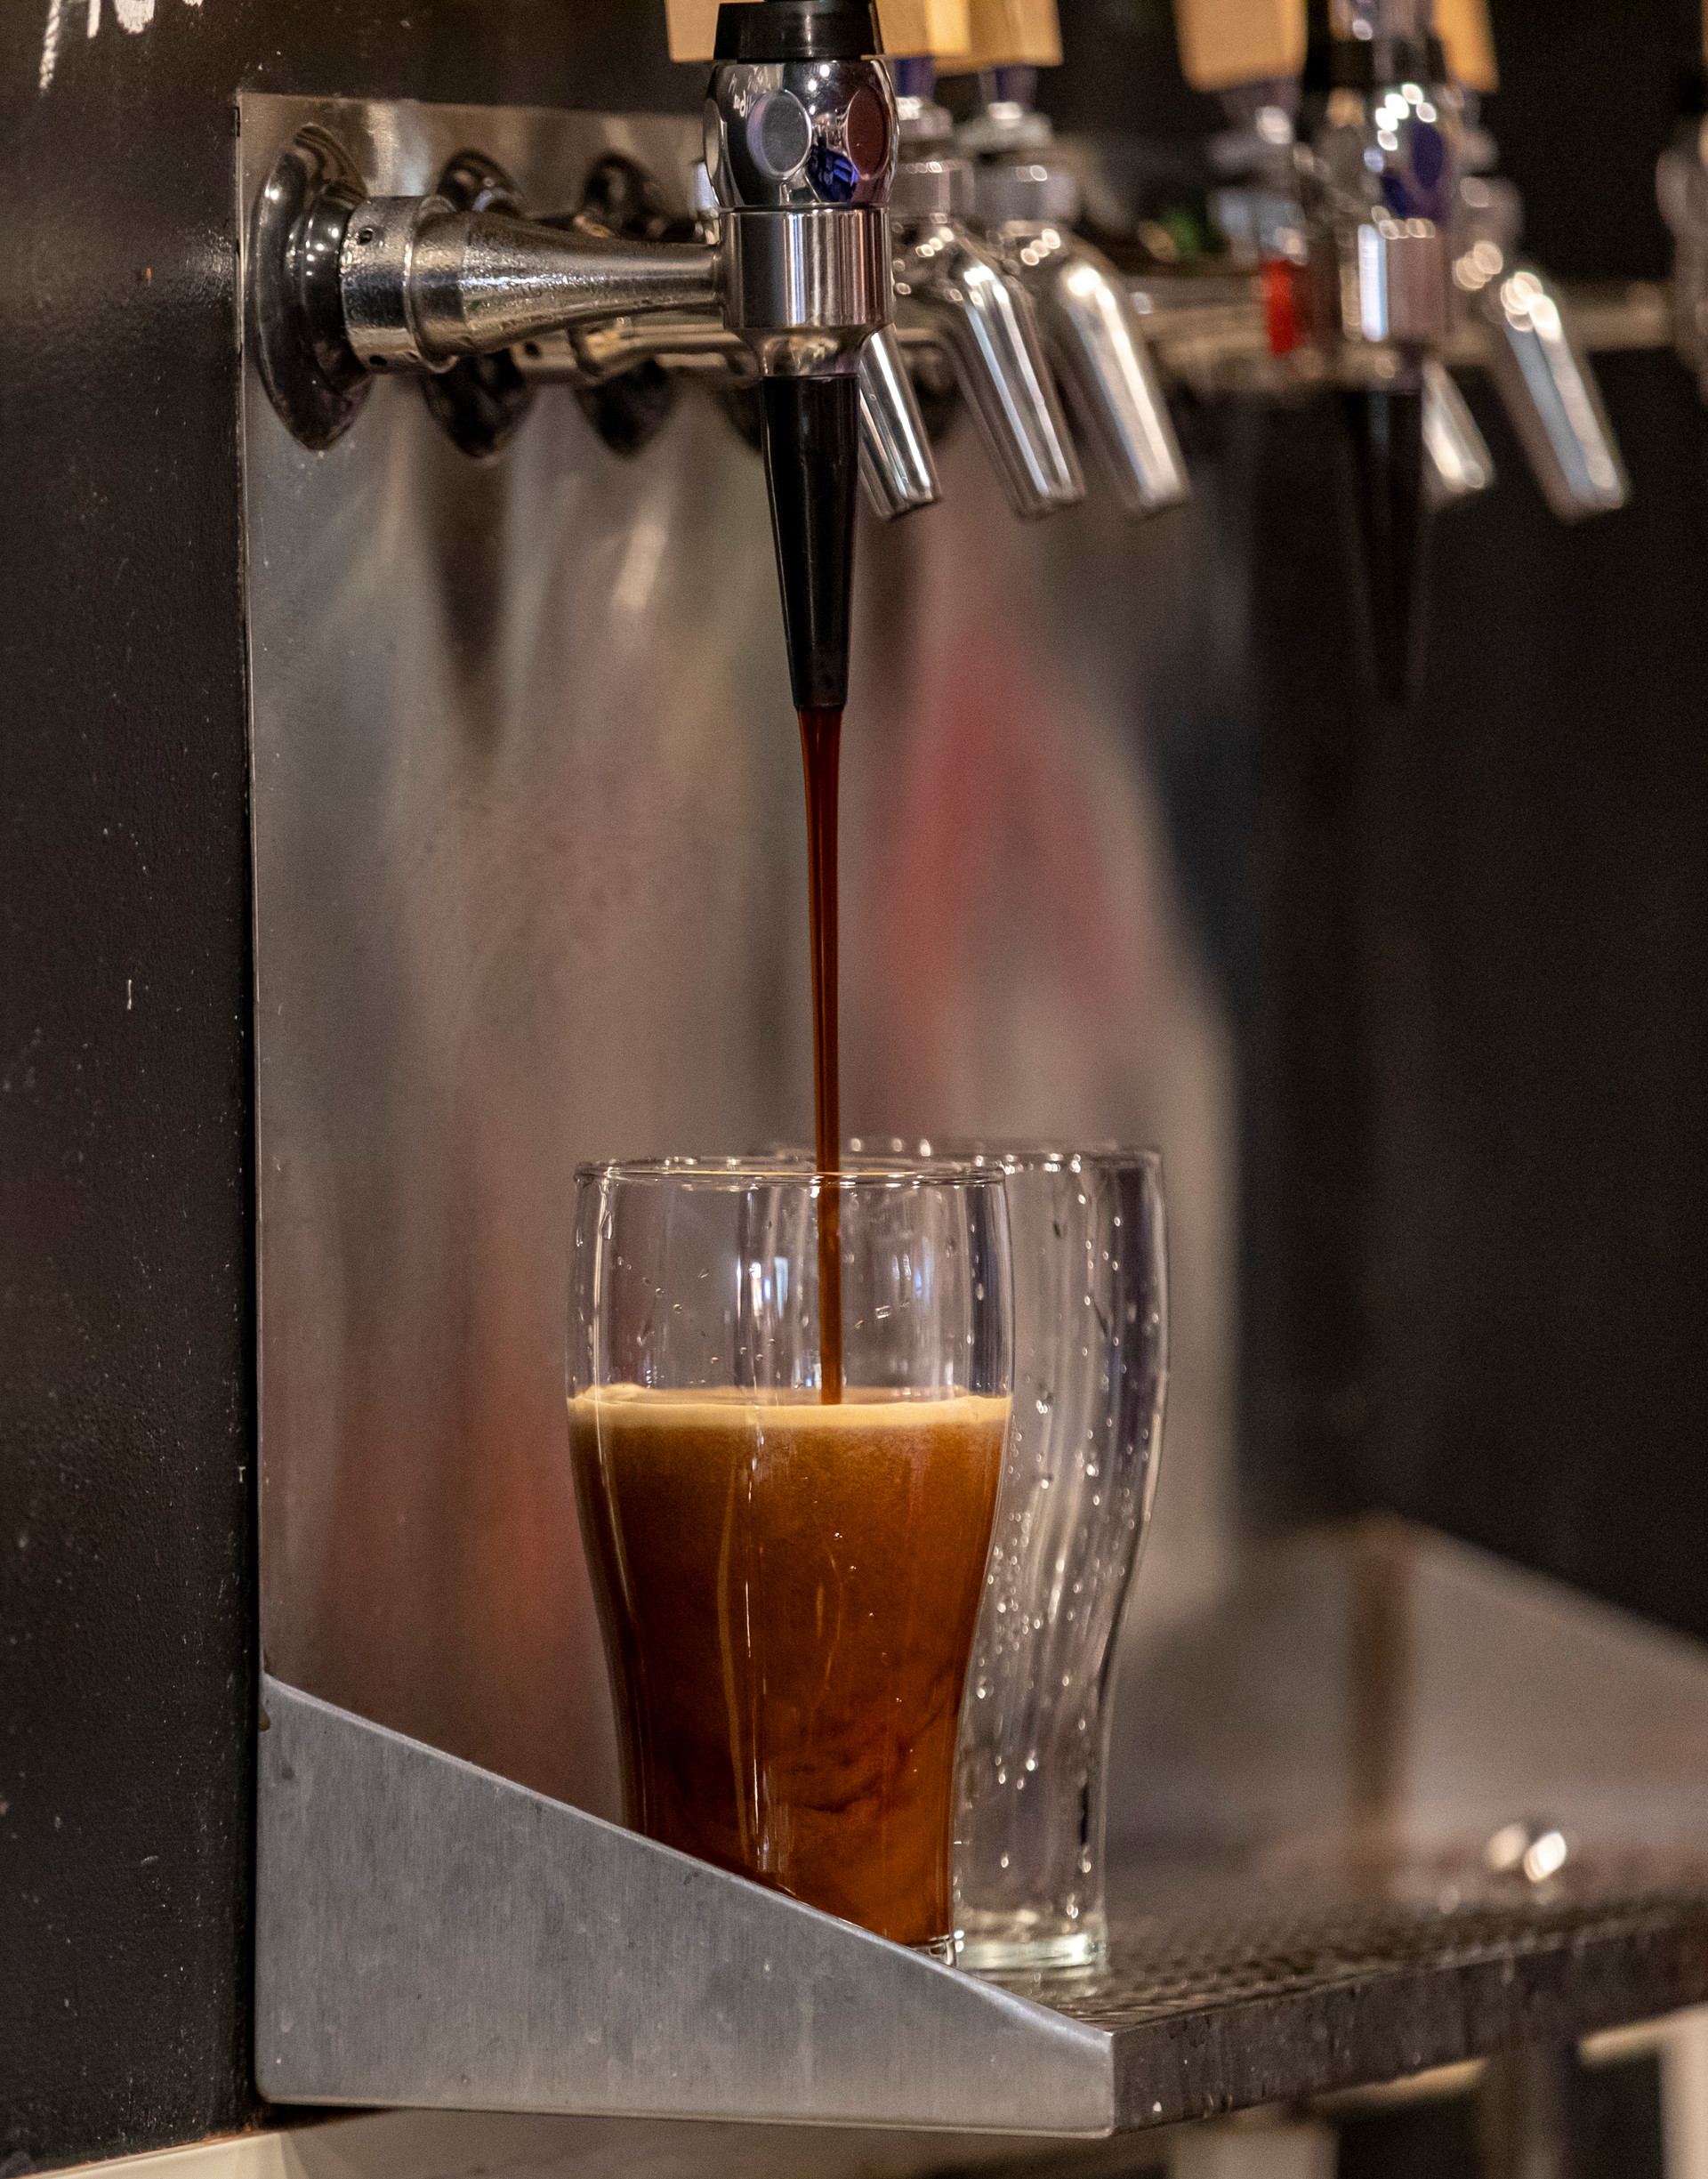 A beer sits under the tap in Little Fish's taproom late during Homecoming Weekend on October 20, 2018. Homecoming Weekend serves as a busy weekend for the taproom for alumni that don't want to be bothered by the bars lining Court St.